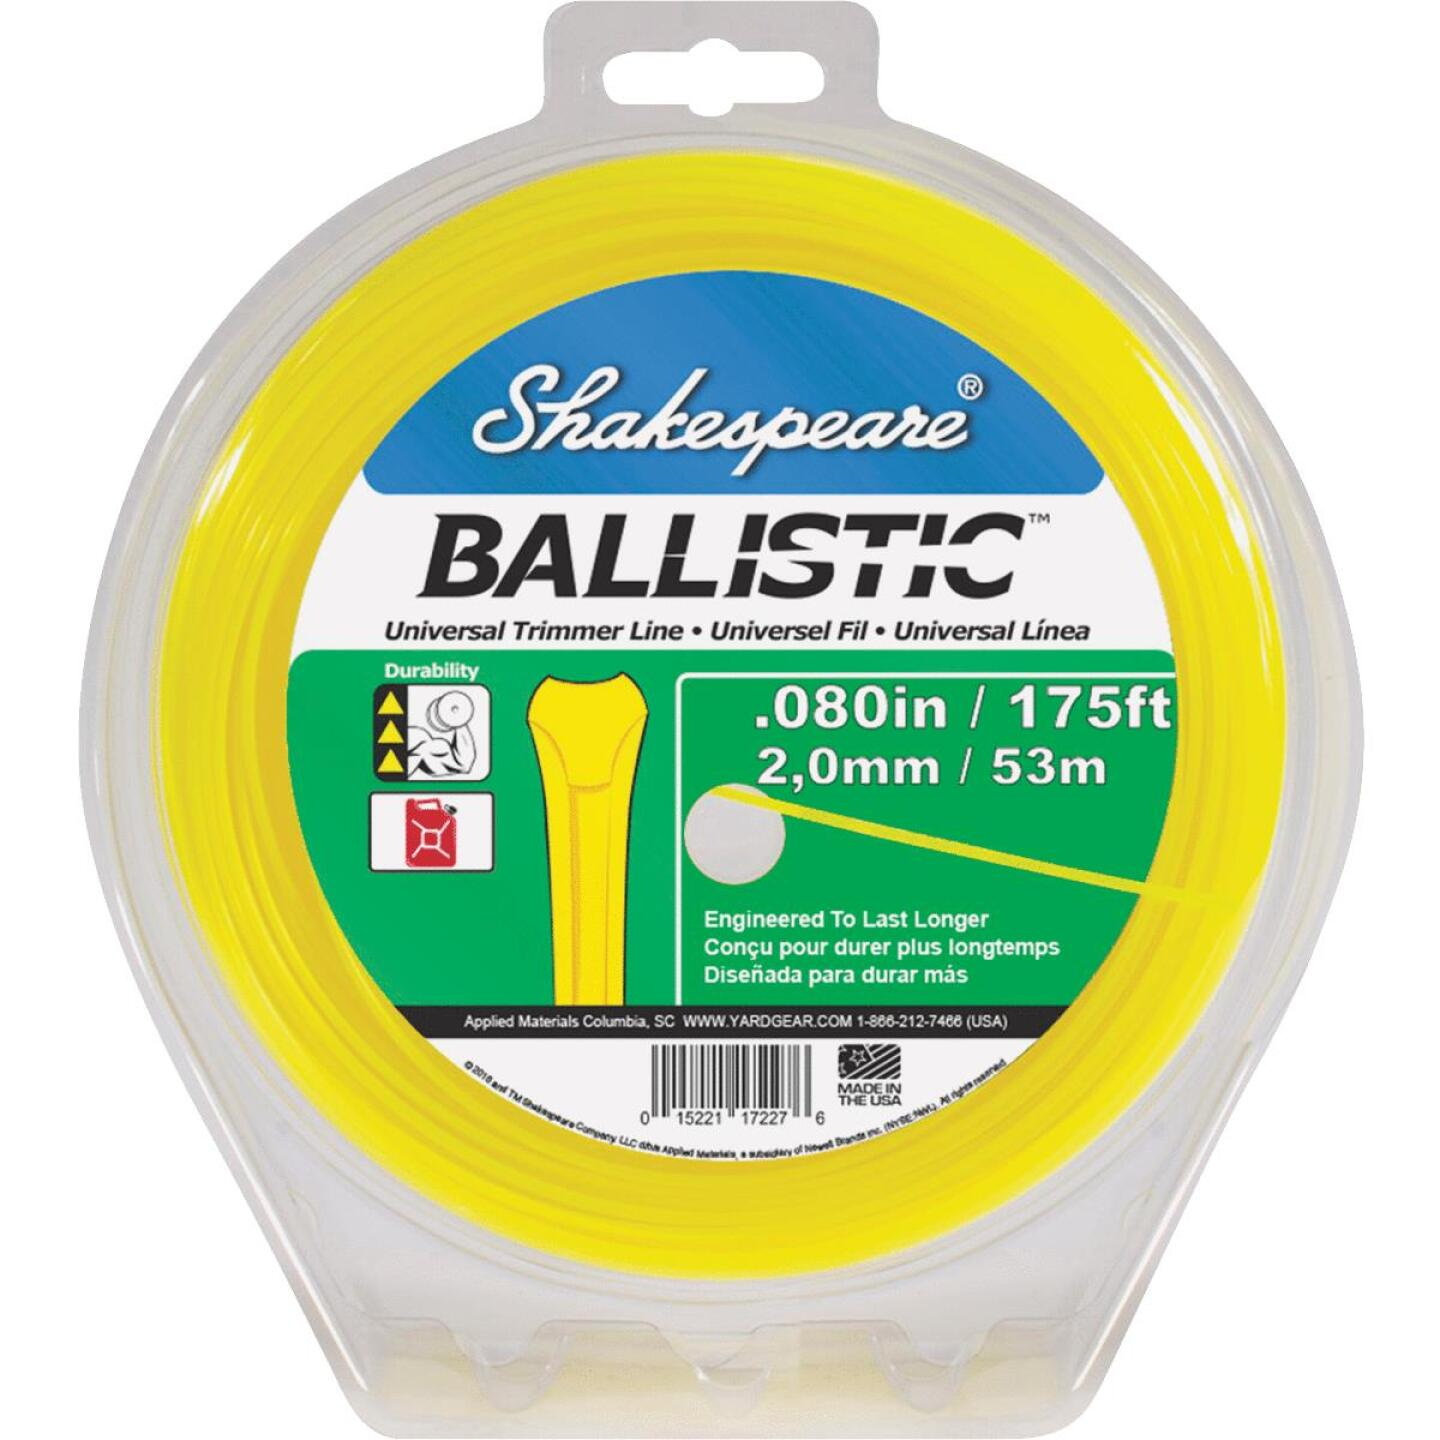 Shakespeare Ballistic 0.080 In.x 210 Ft. Universal Trimmer Line Image 1